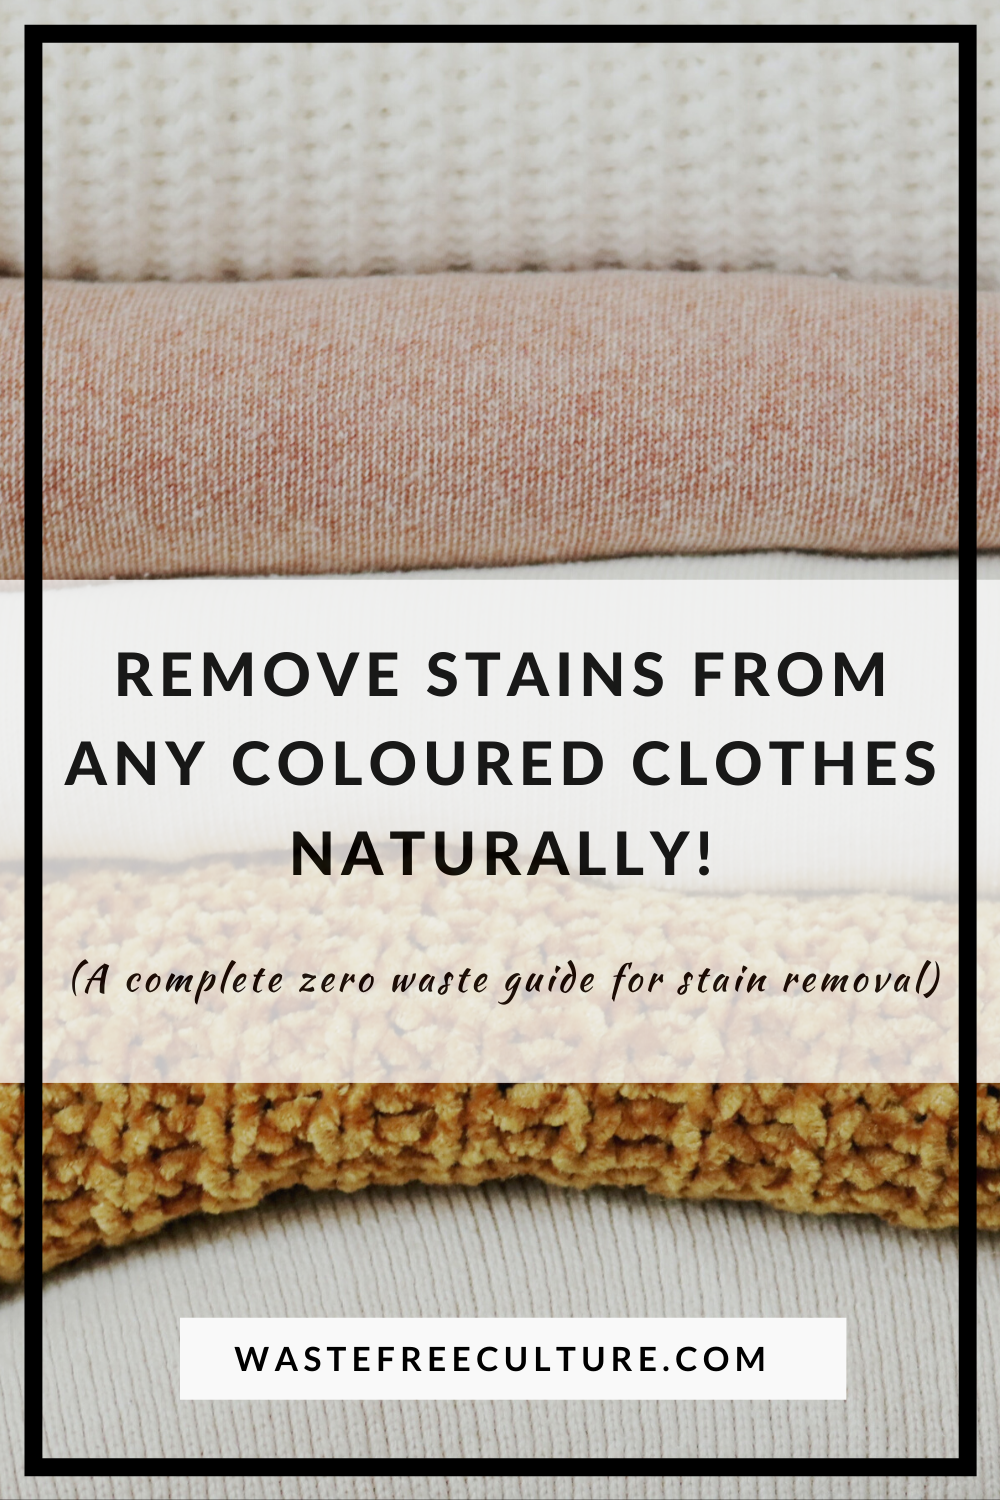 Remove stains from any coloured clothes naturally